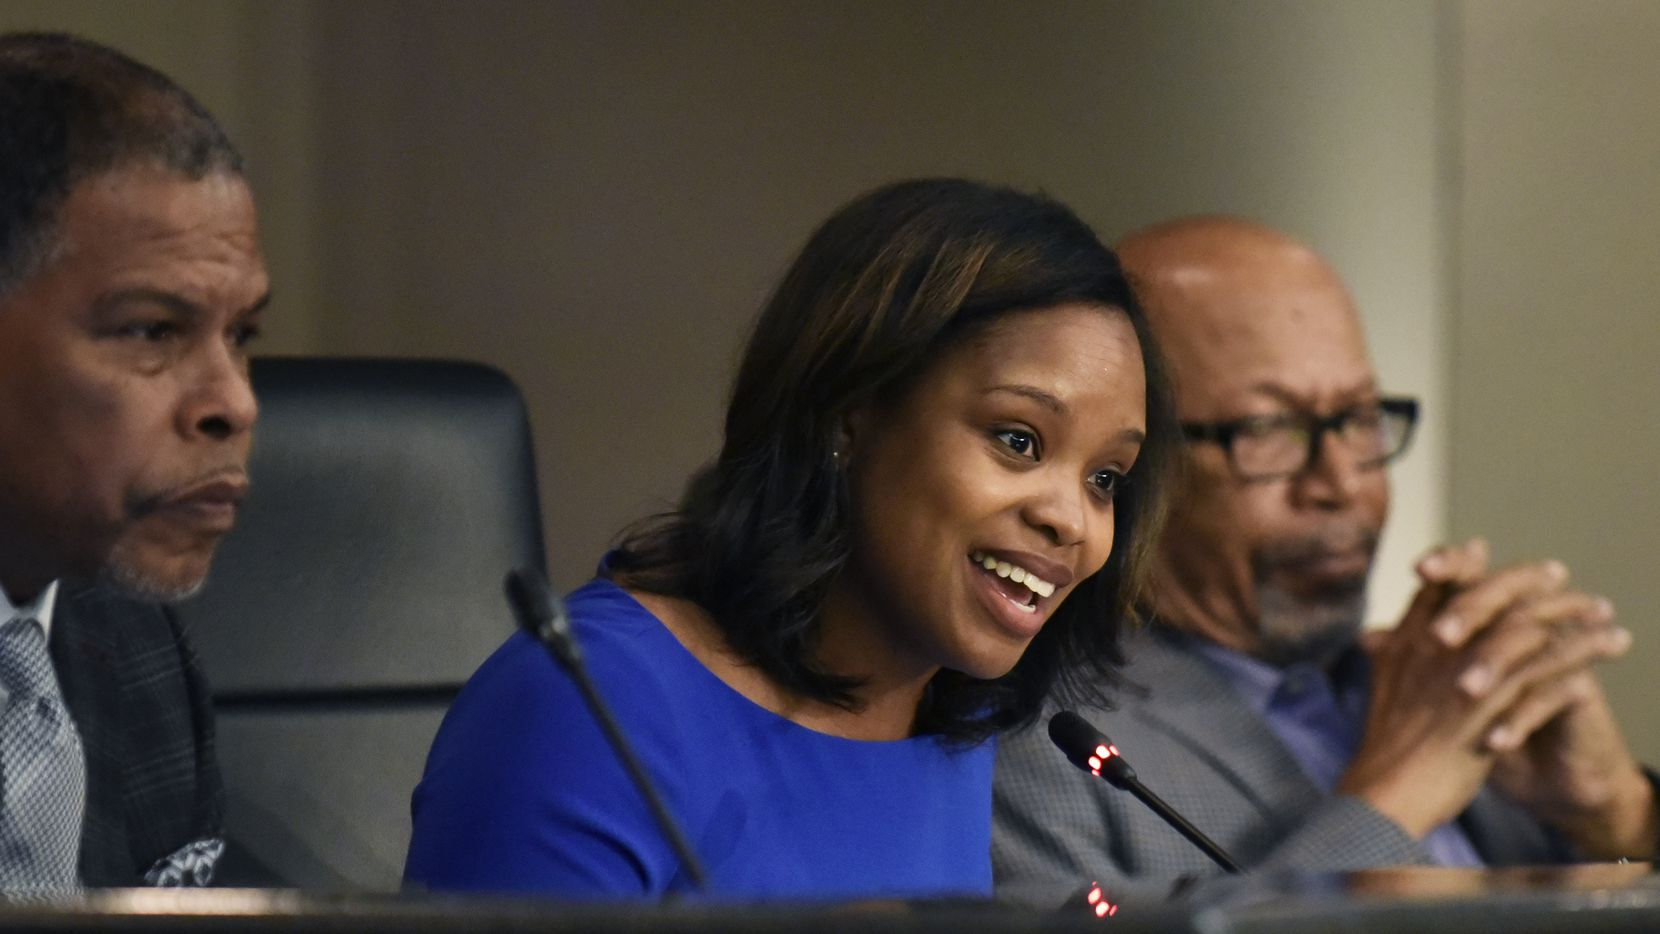 DeSoto councilwoman Candice Quarles benefited from her husband's fraud but has maintained she knew nothing about his illegal transactions.